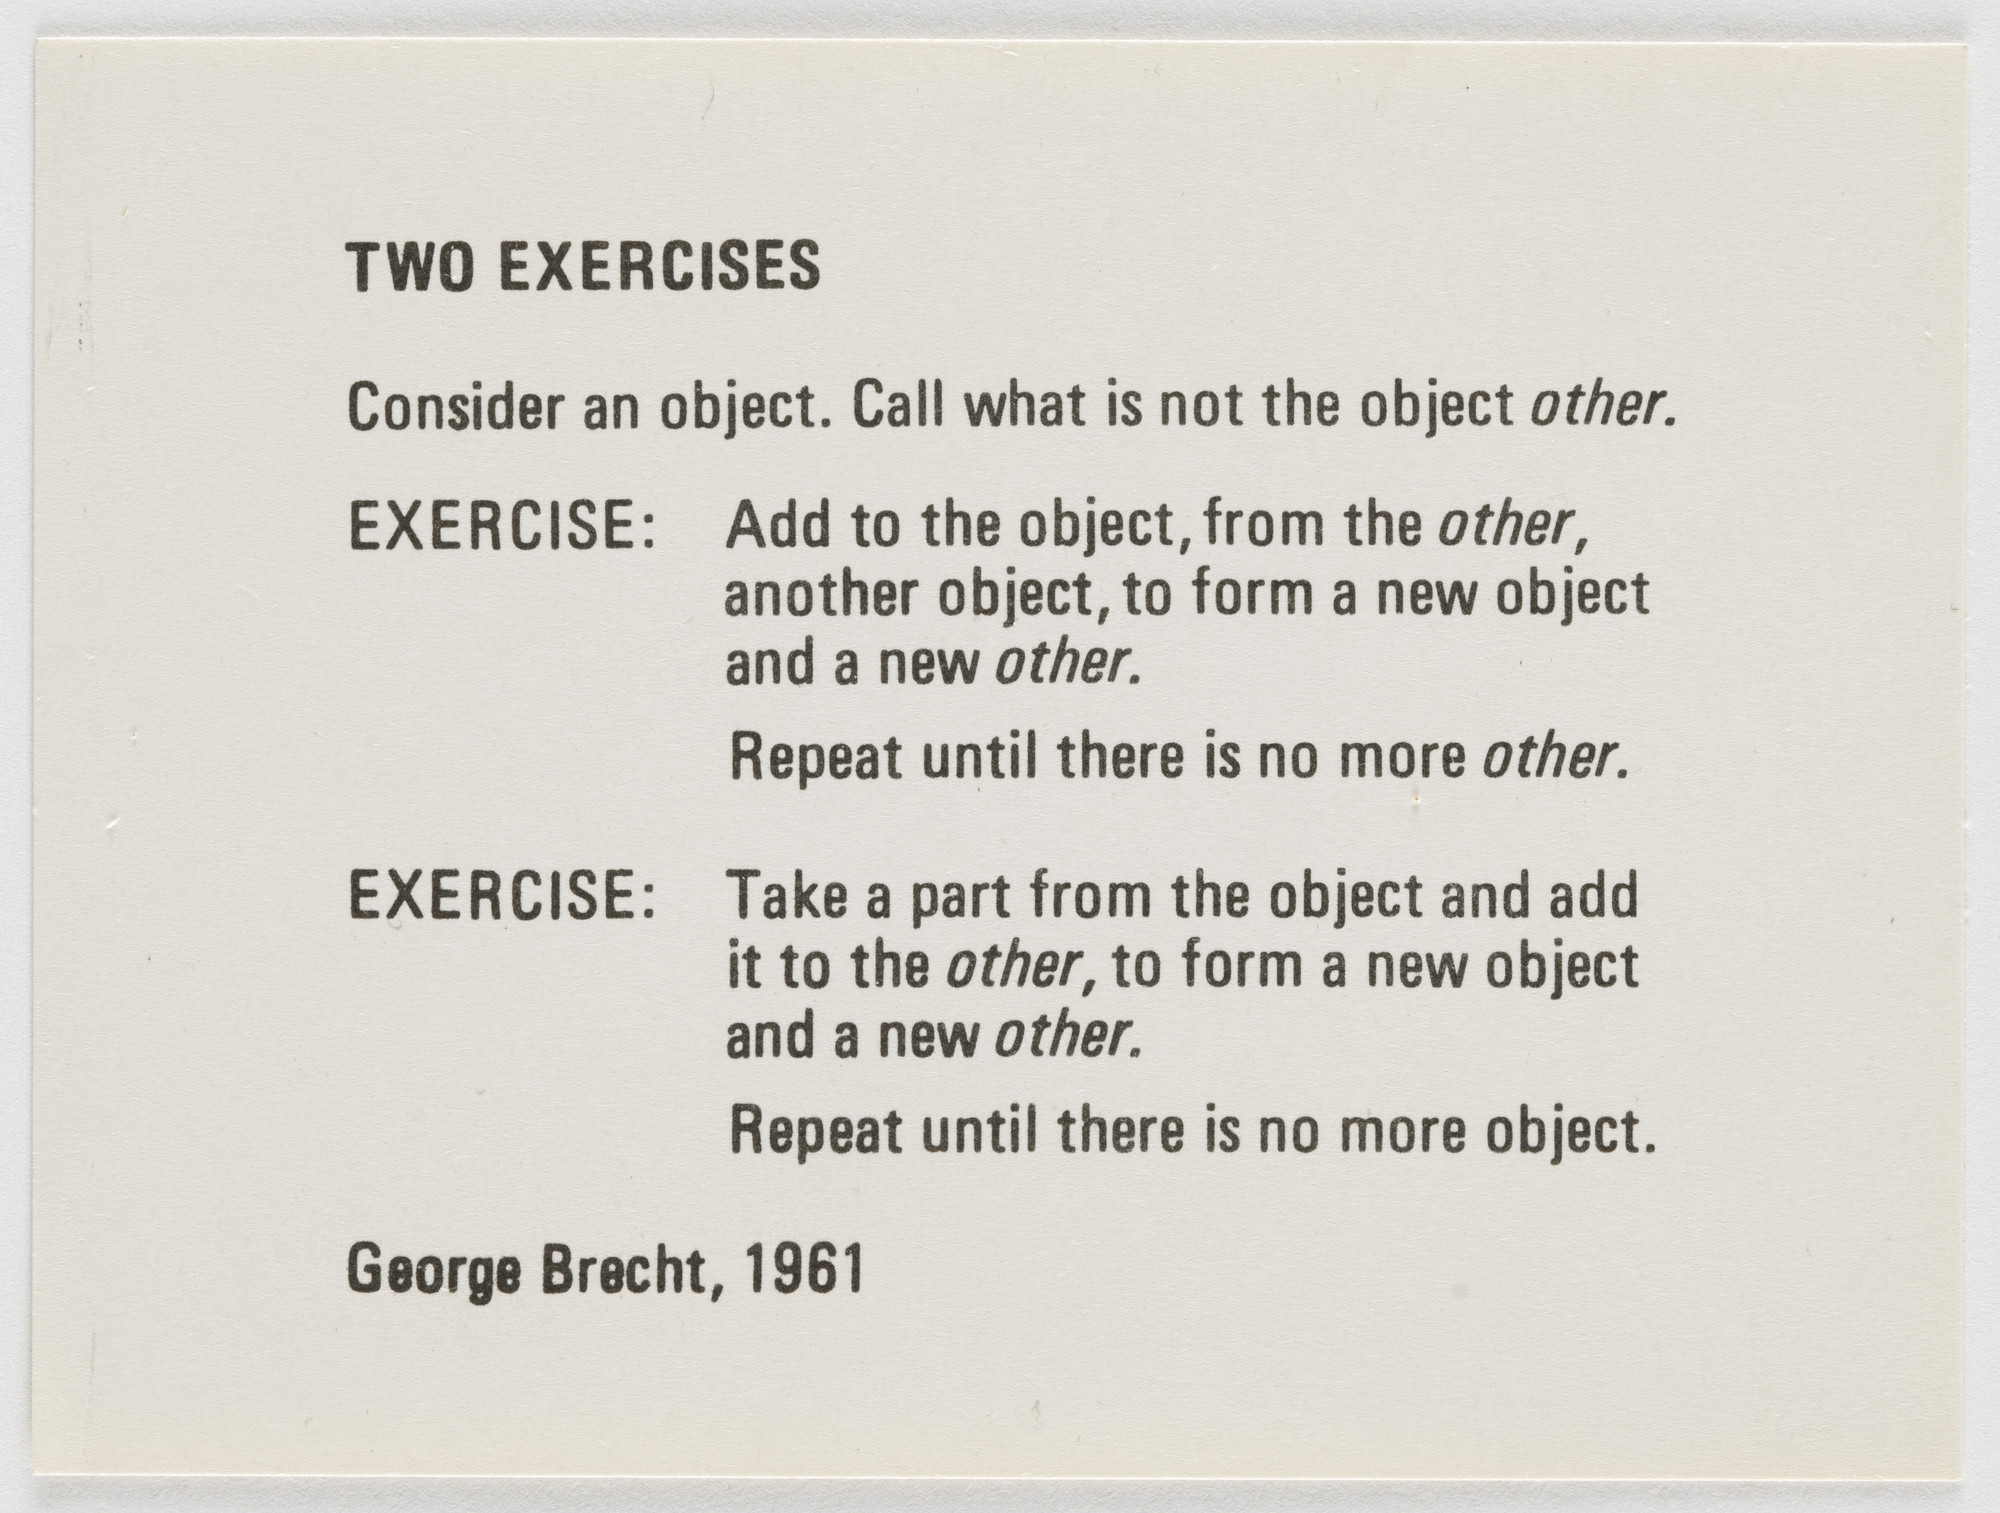 George Brecht. Two Exercises. 1961